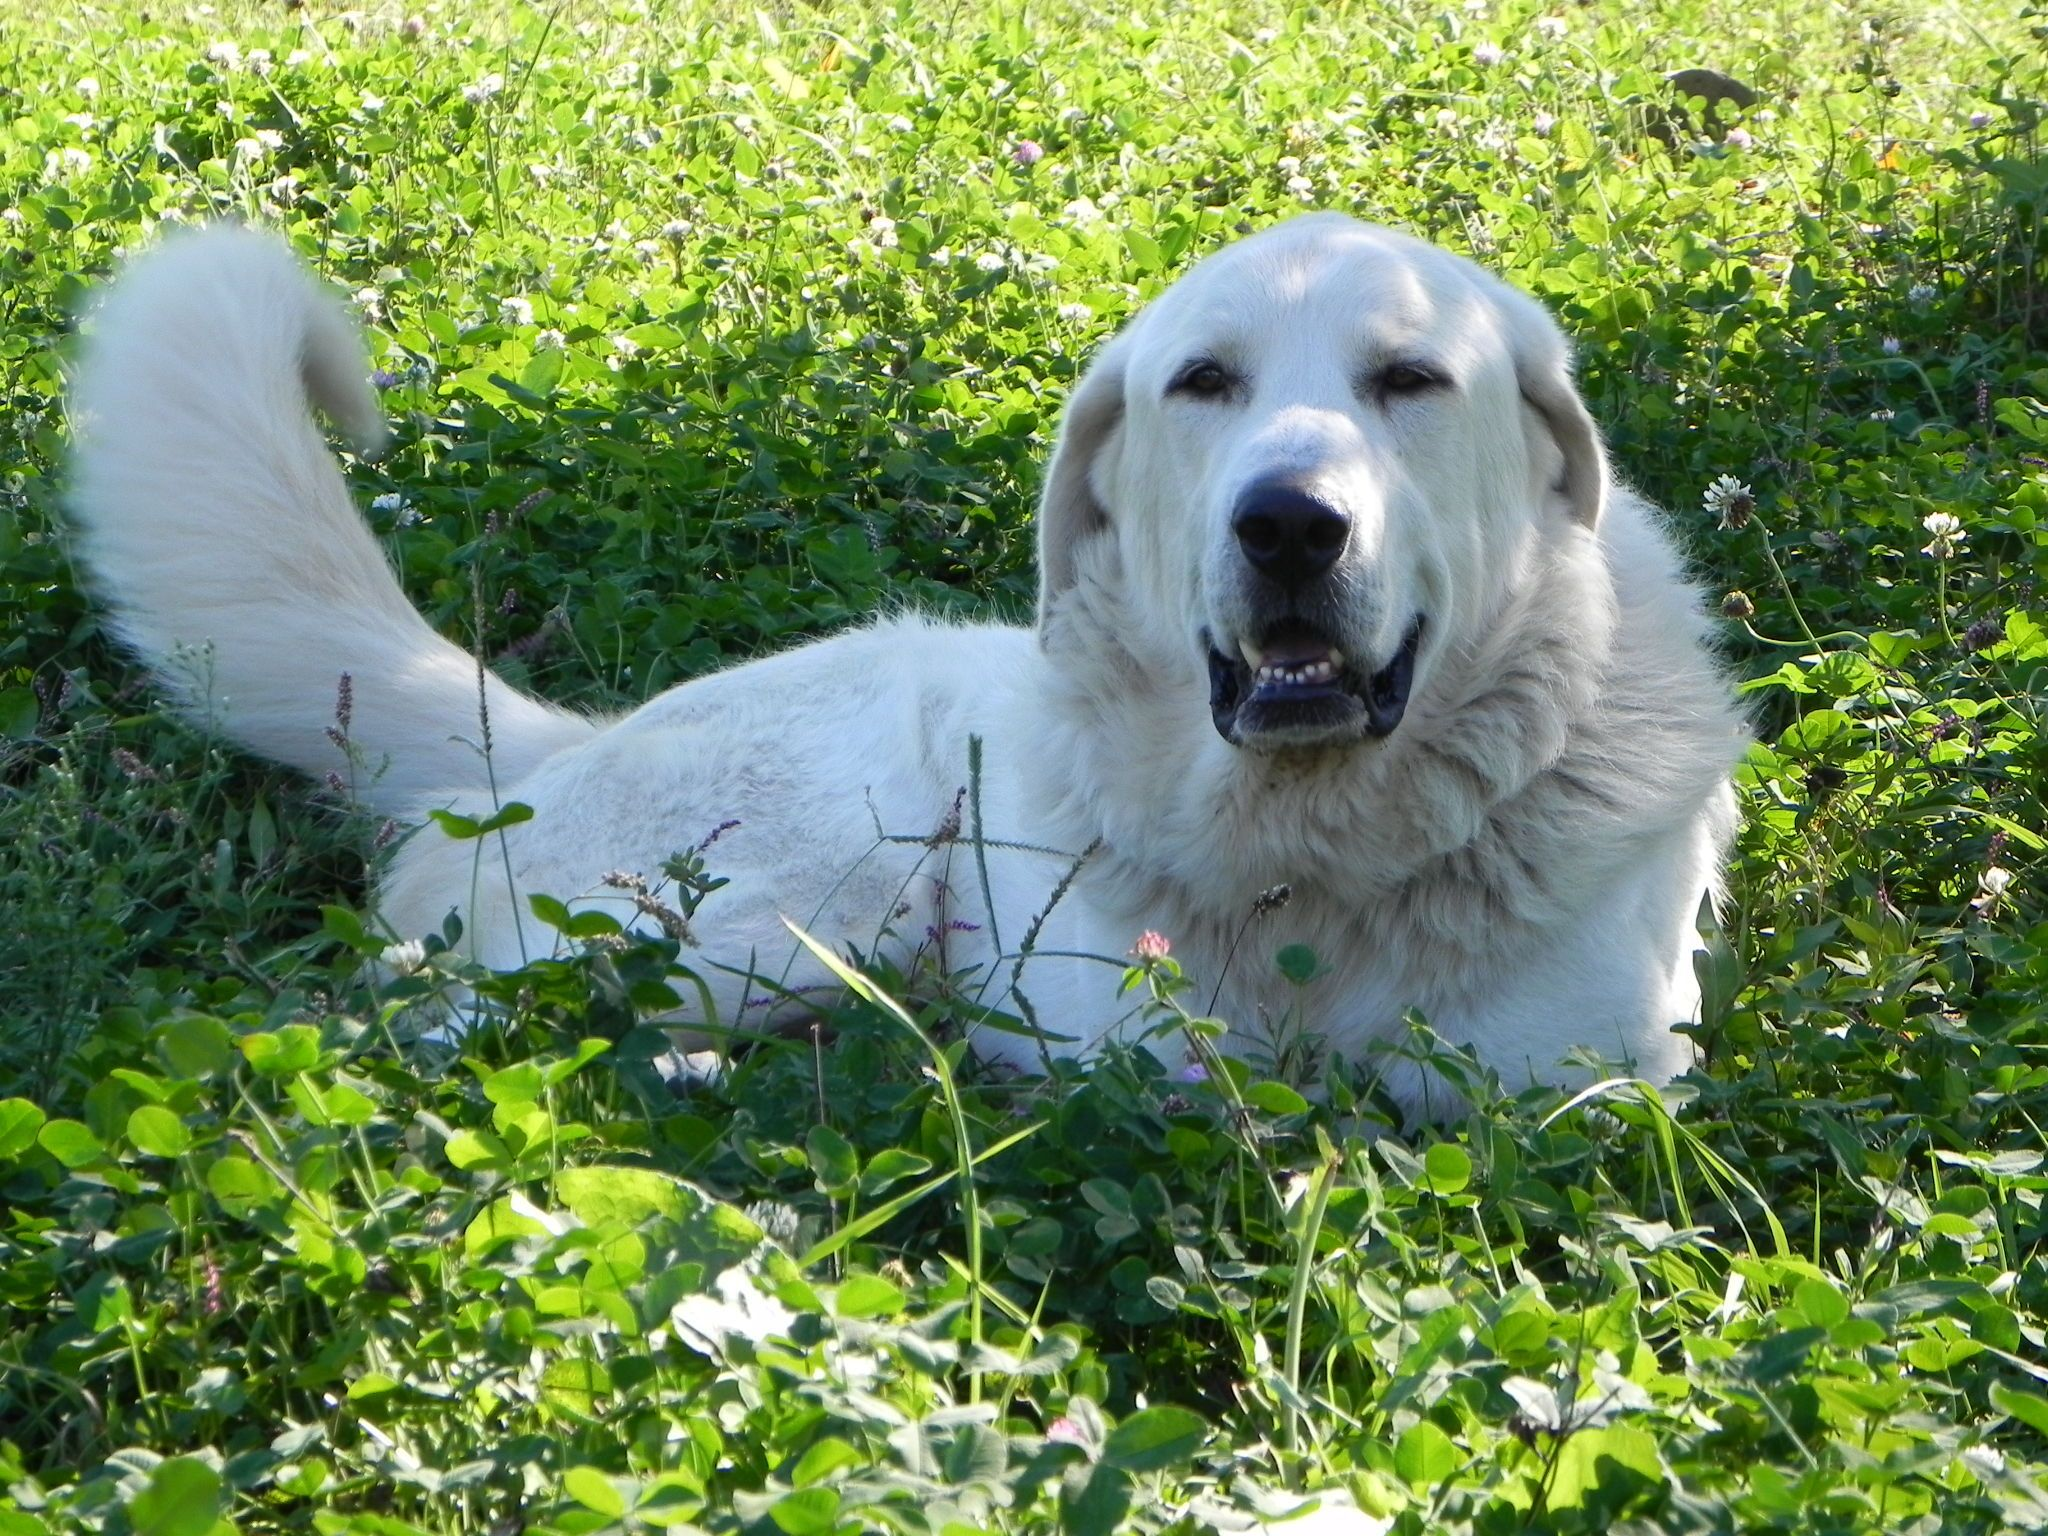 Great Pyrenees Wallpapers, 44 Great Pyrenees Images and Wallpapers for ...